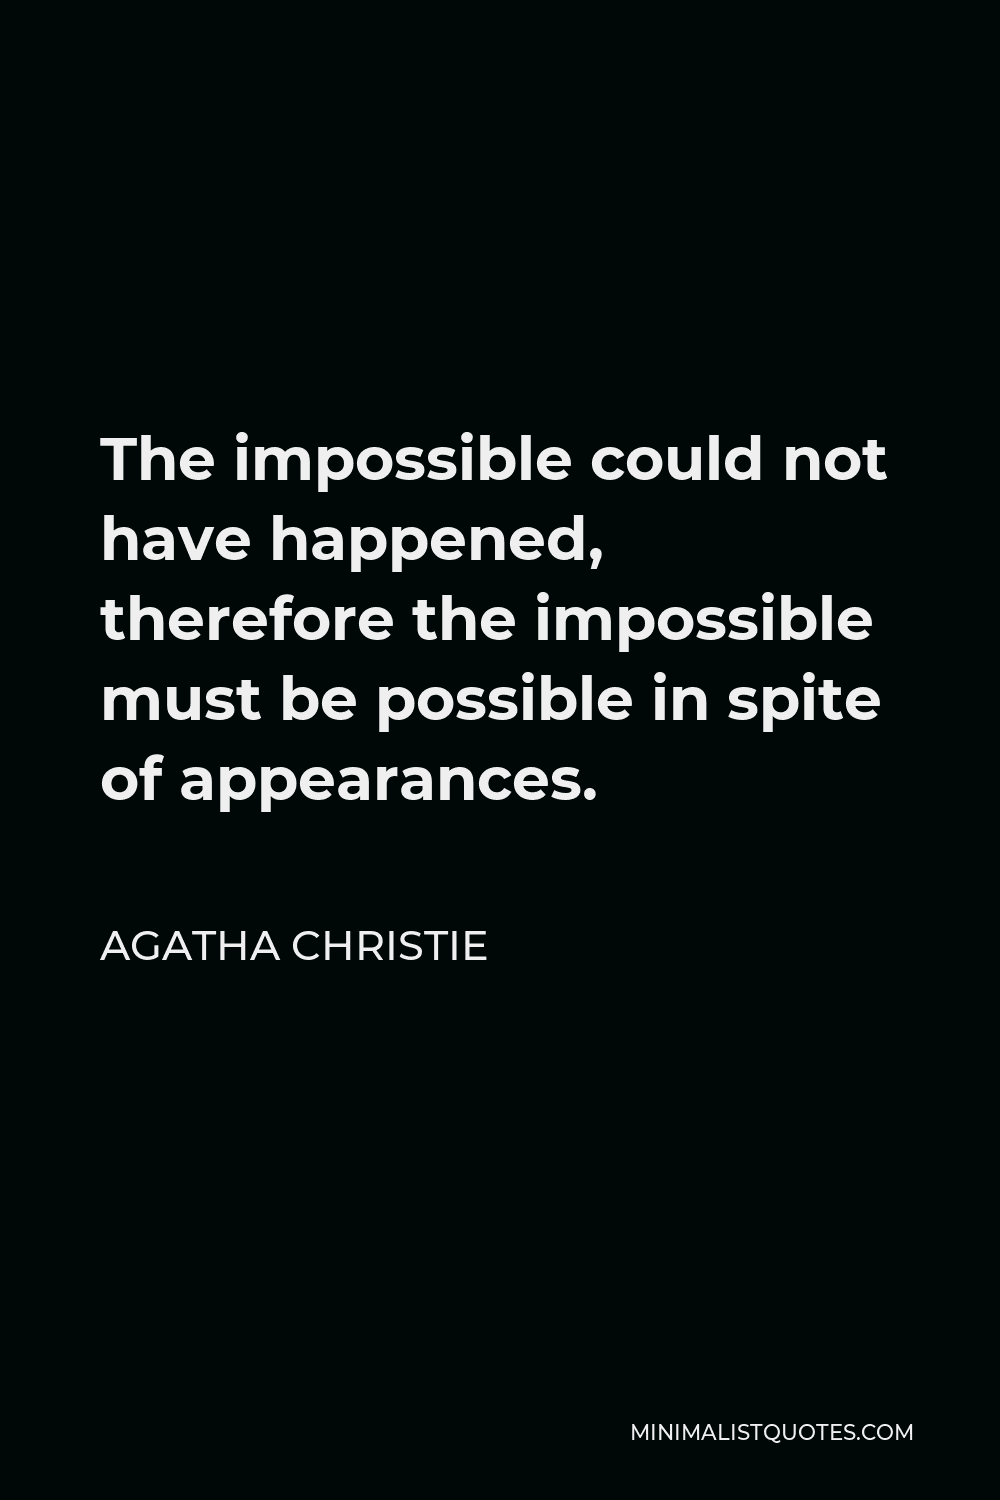 Agatha Christie Quote - The impossible could not have happened, therefore the impossible must be possible in spite of appearances.